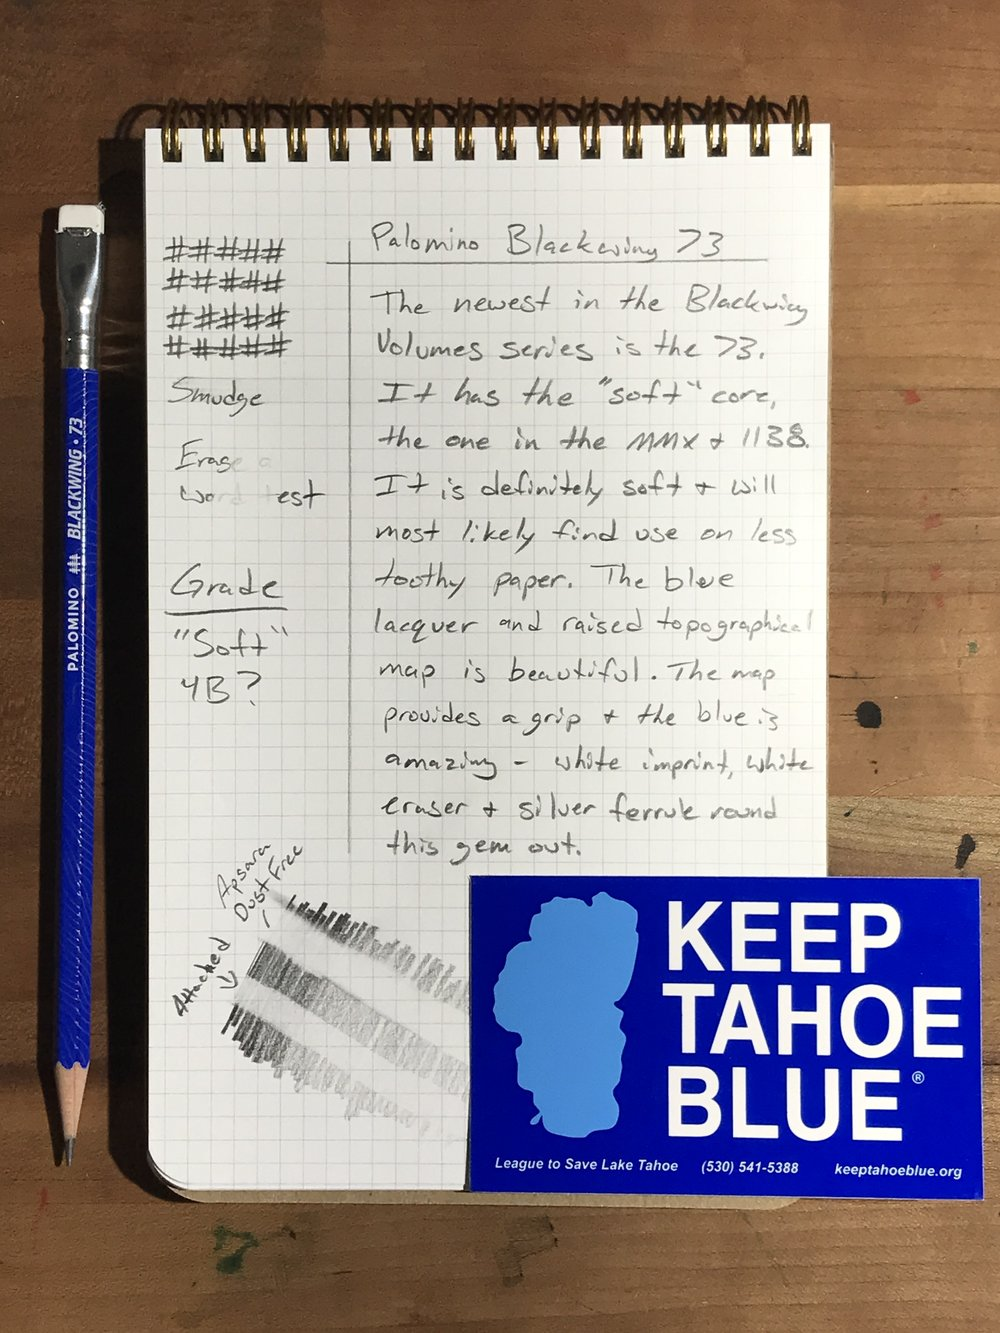 palomino-blackwing-volume-73-pencil-writing-sample.jpg